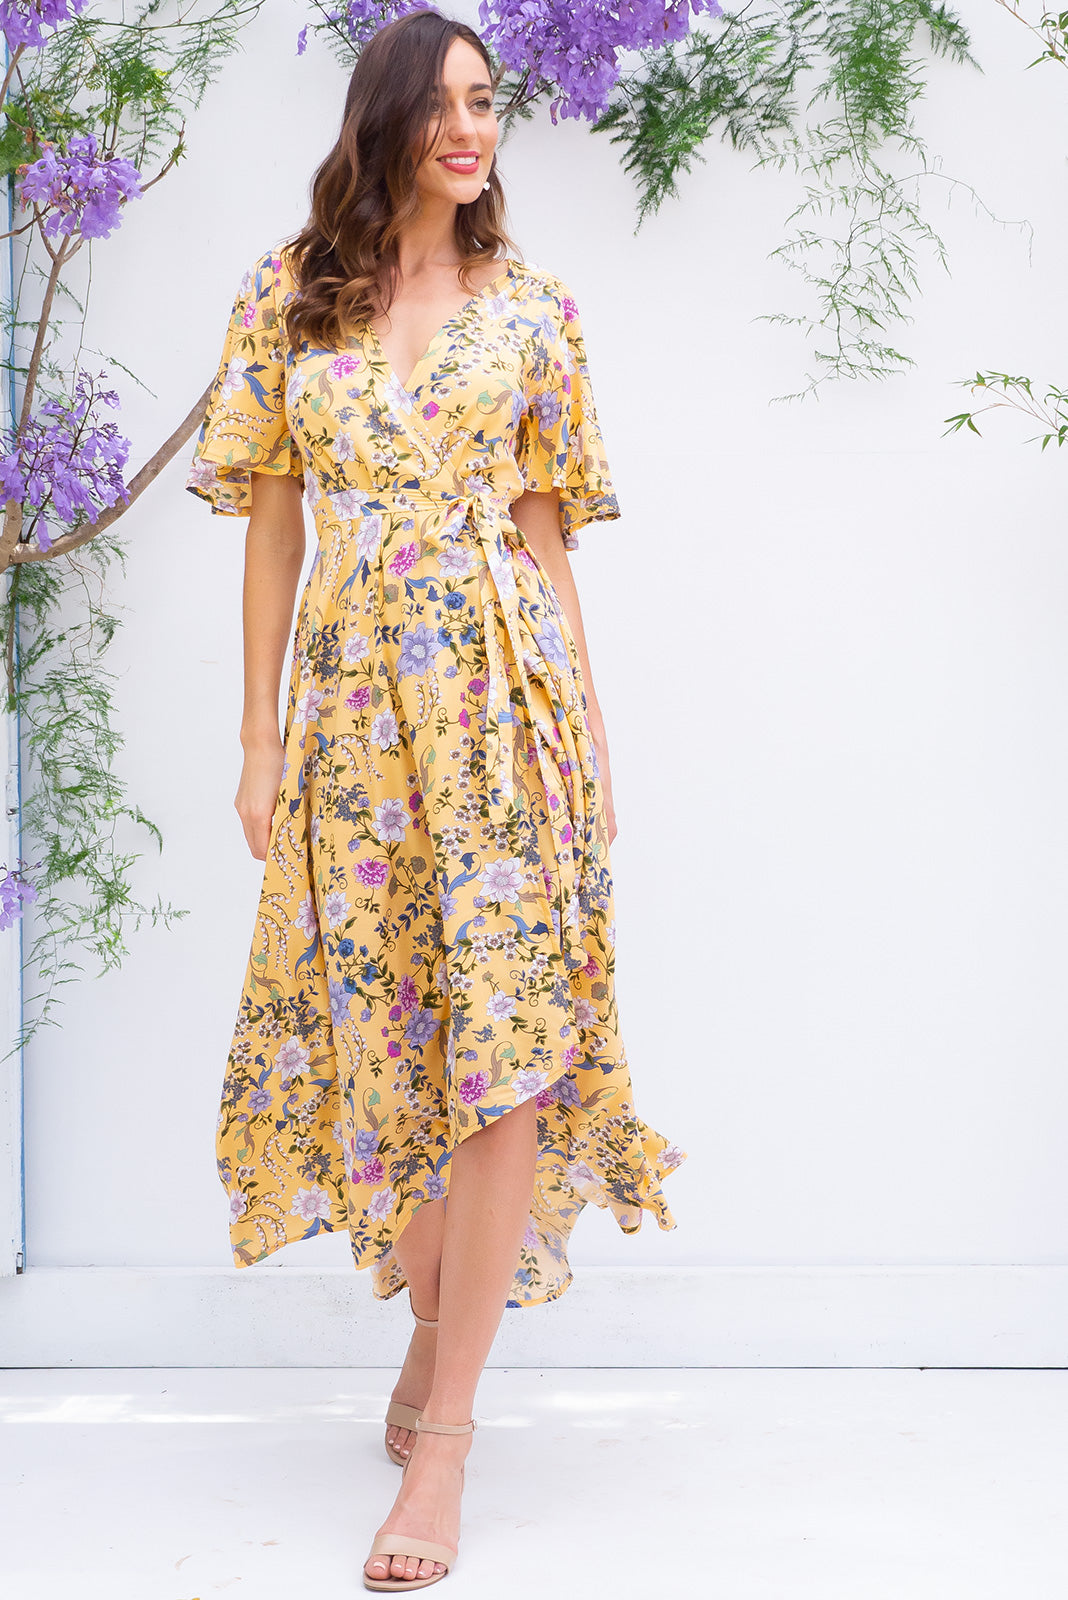 Penny Melody Yellow Maxi Wrap Dress features a soft buttercup yellow base with a delicate floral bohemian print on a soft woven rayon and has a petal sleeve and wrap around shape